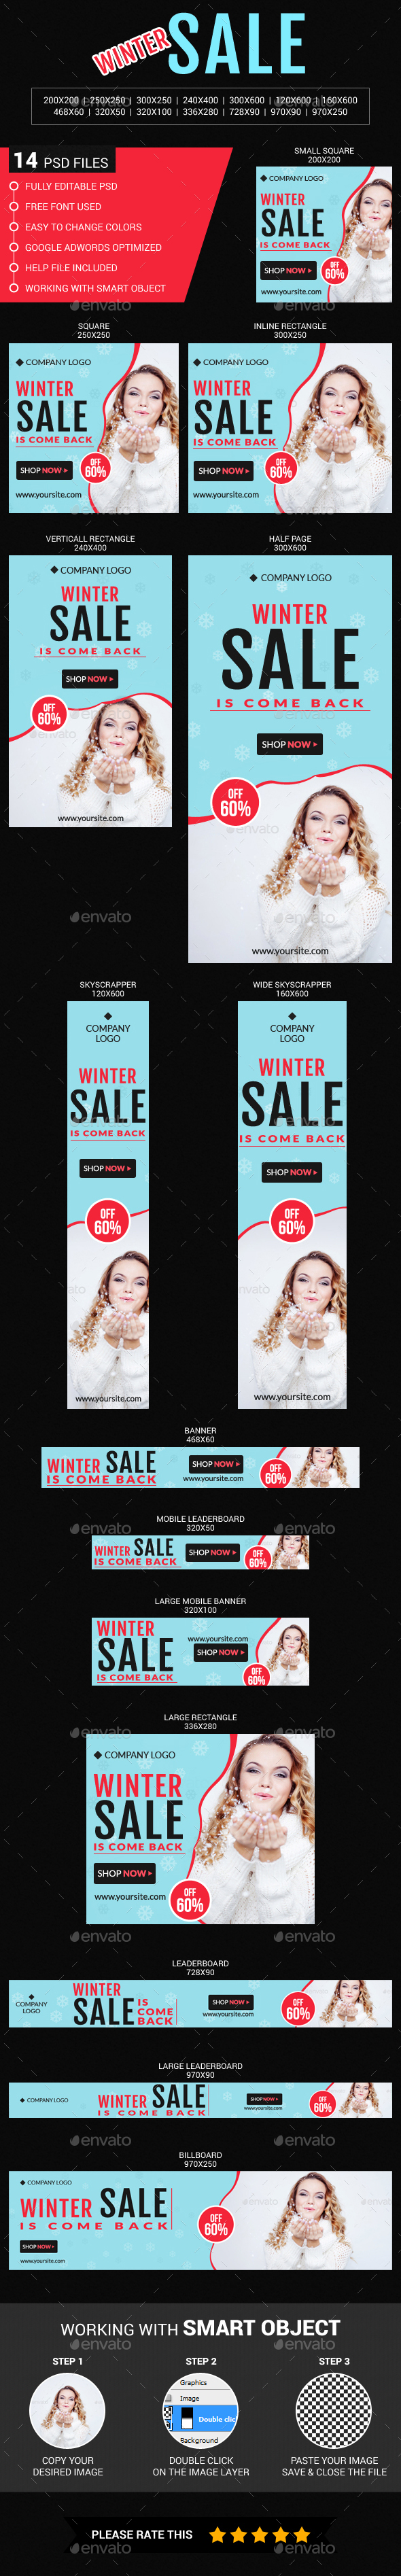 Winter Sale - Banners & Ads Web Elements